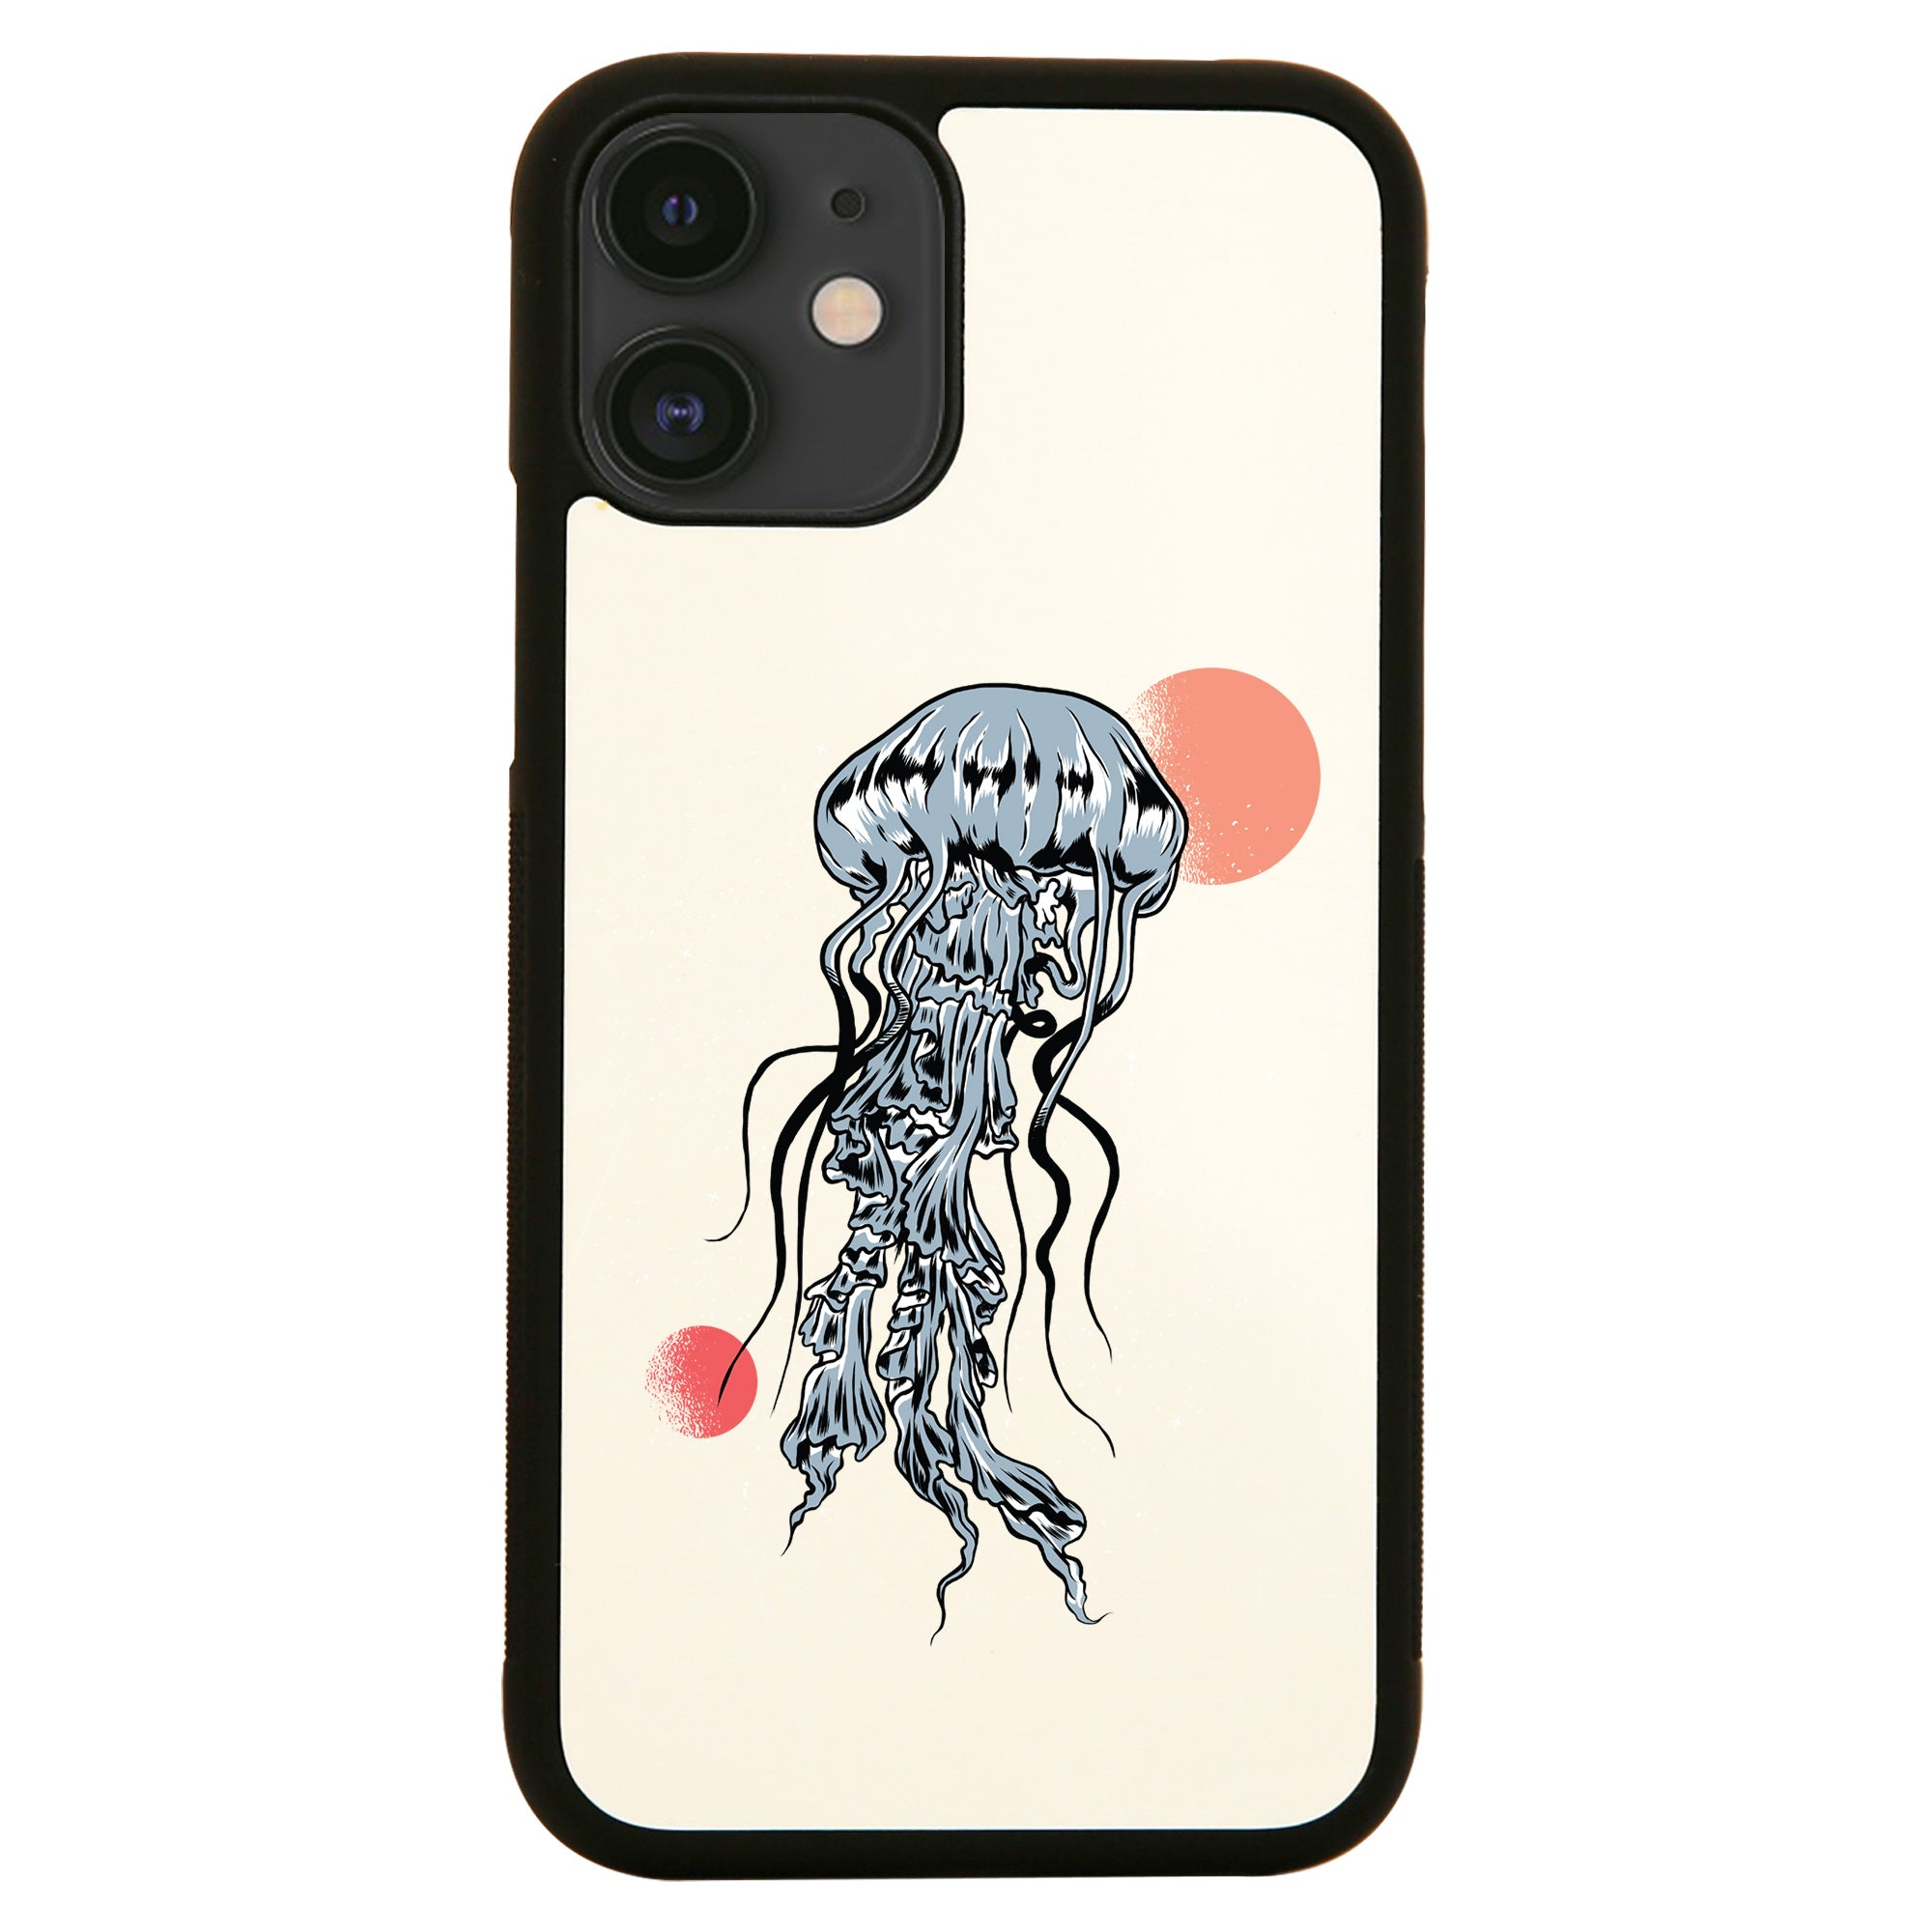 Space Jellyfish iPhone case